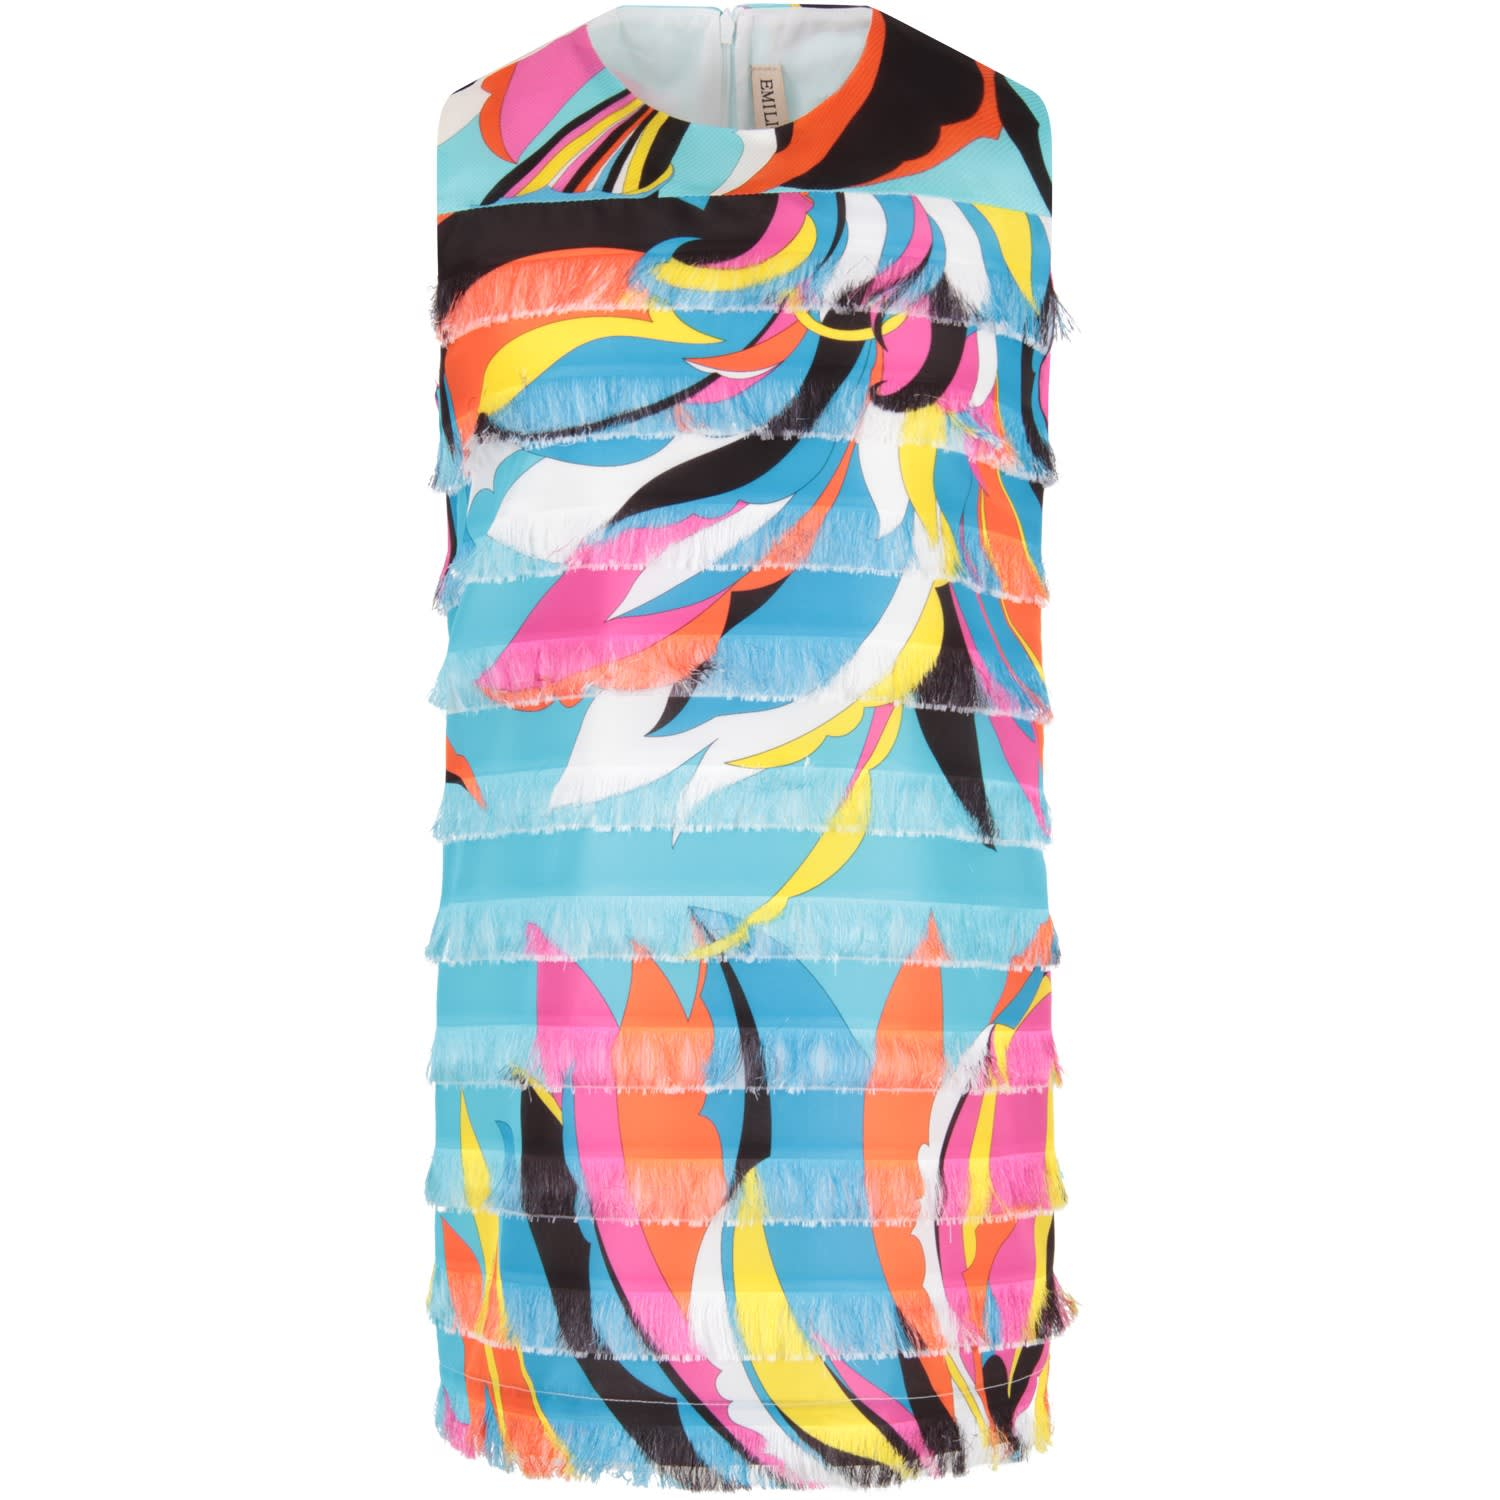 Buy Emilio Pucci Light Blue Girl Dress With Iconic Print online, shop Emilio Pucci with free shipping